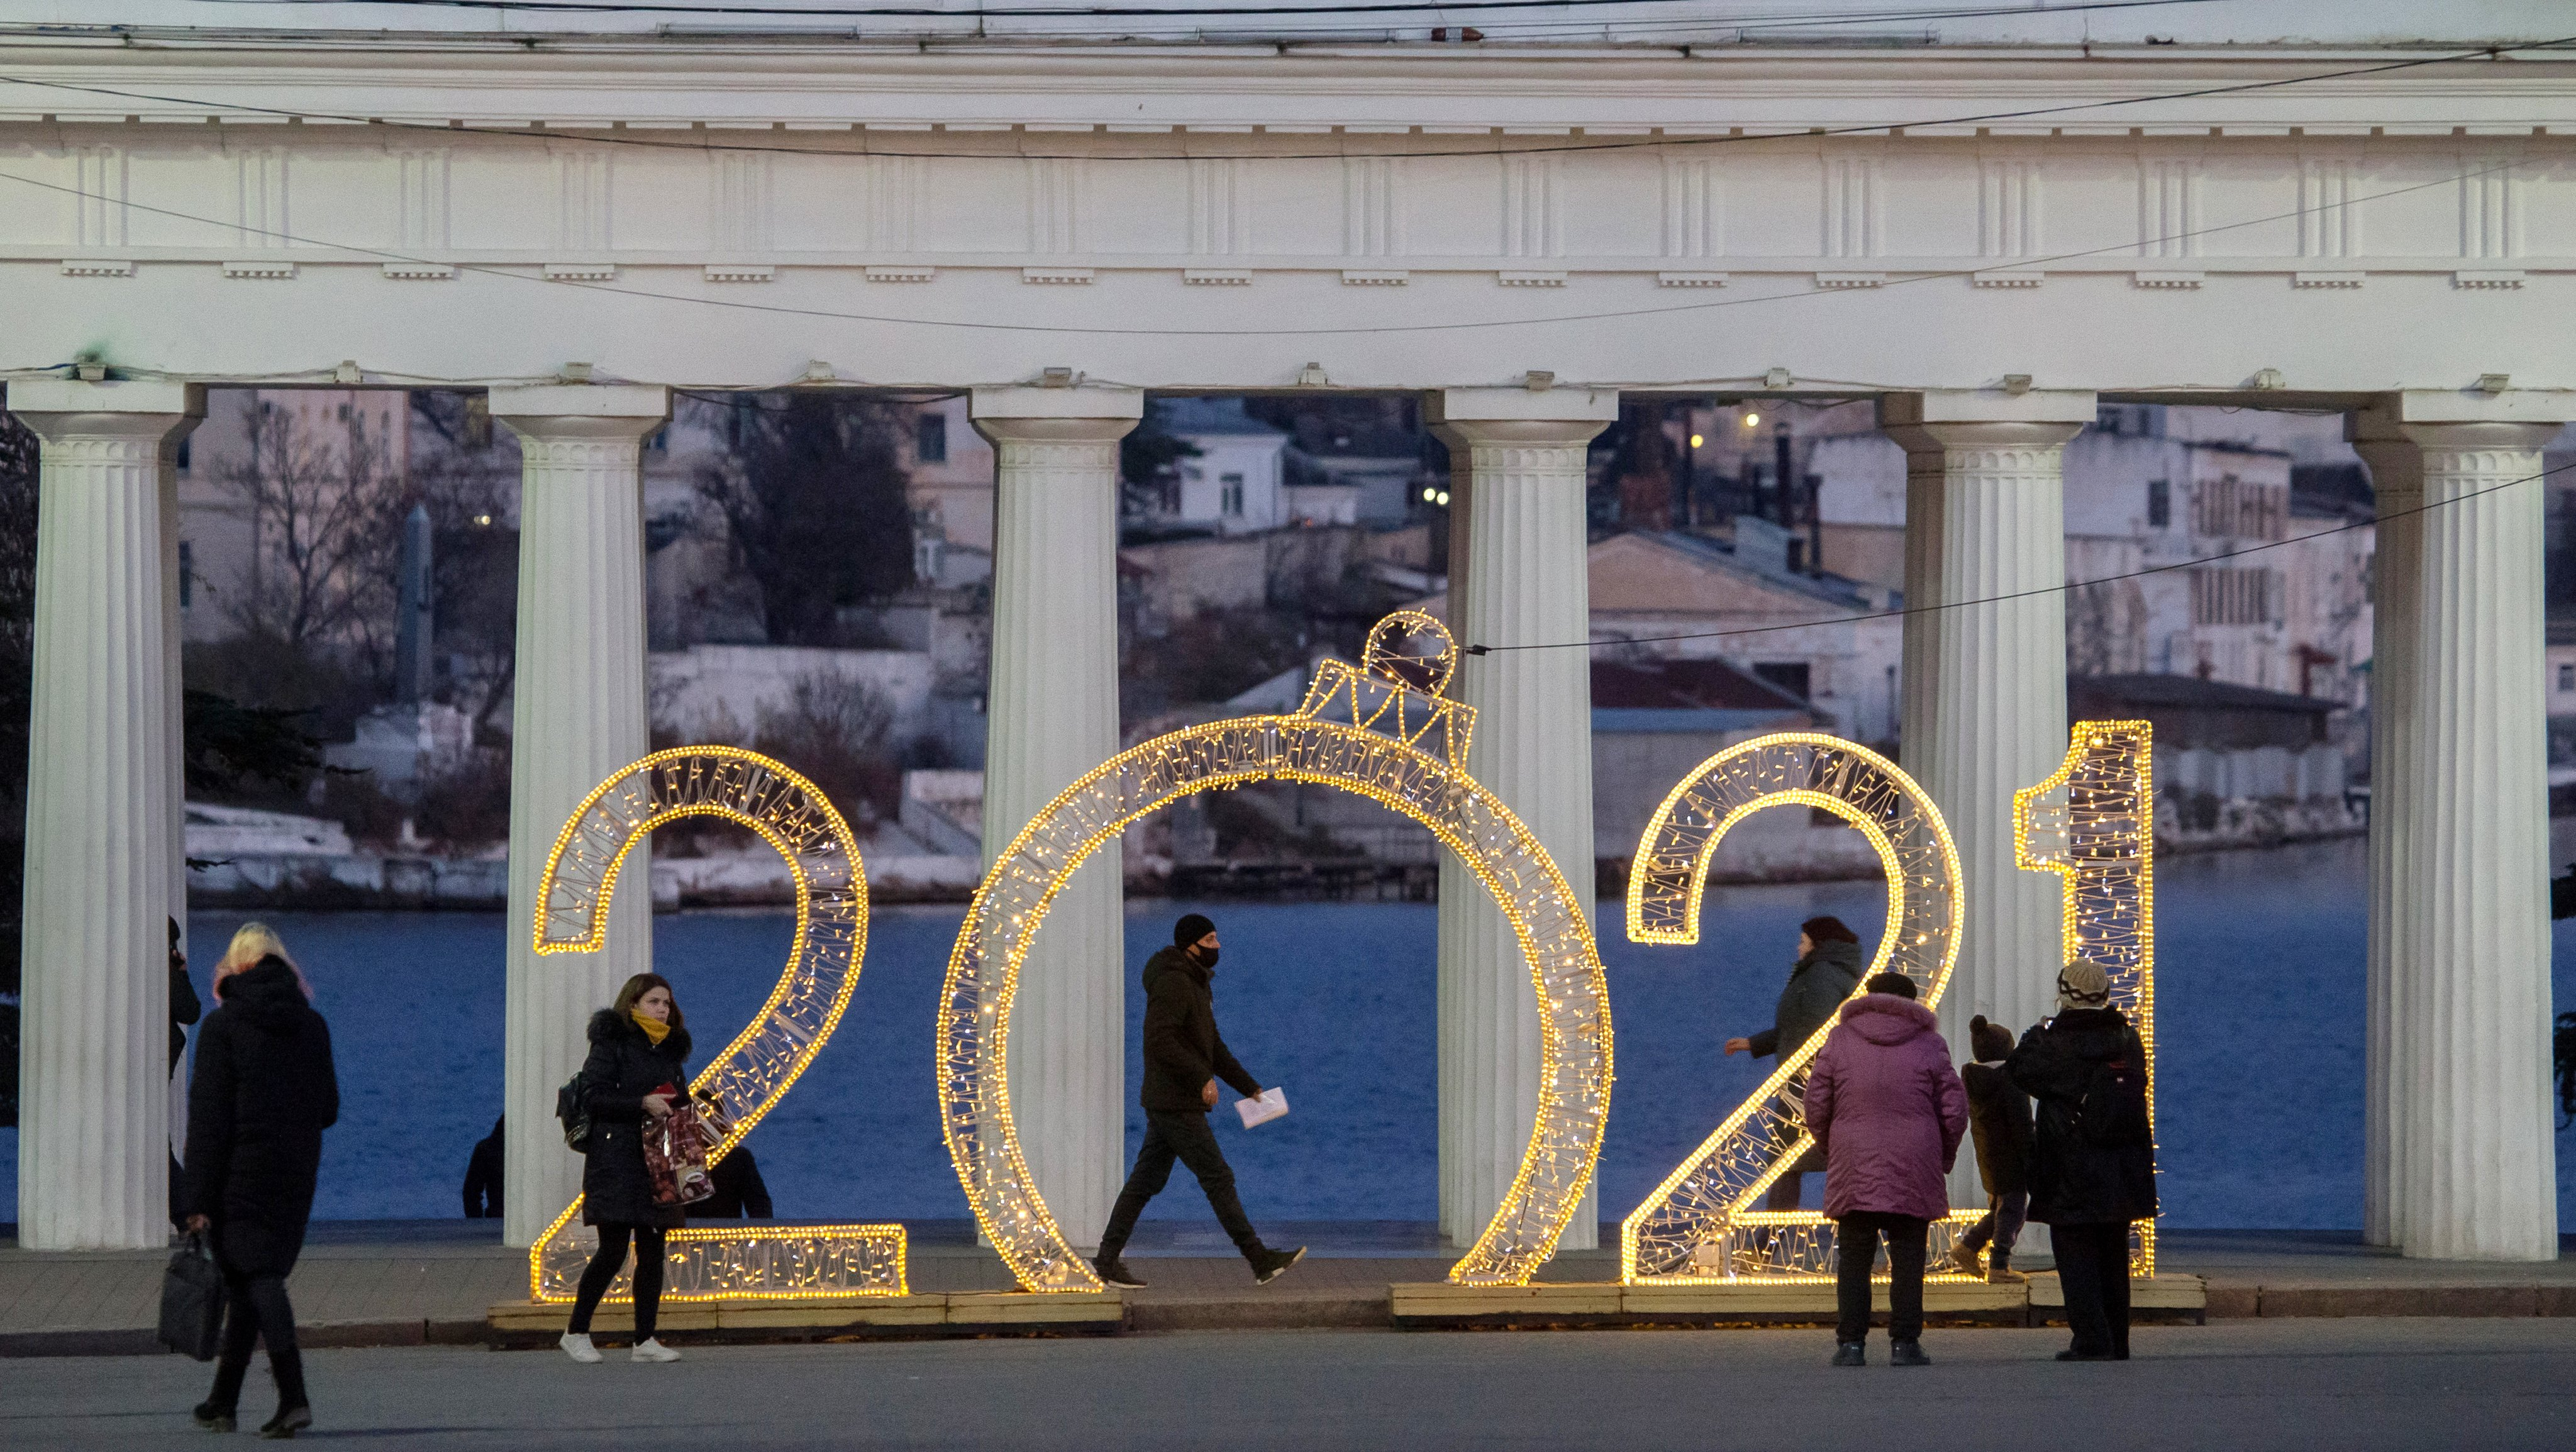 Russian city of Sevastopol decorated for winter holidays